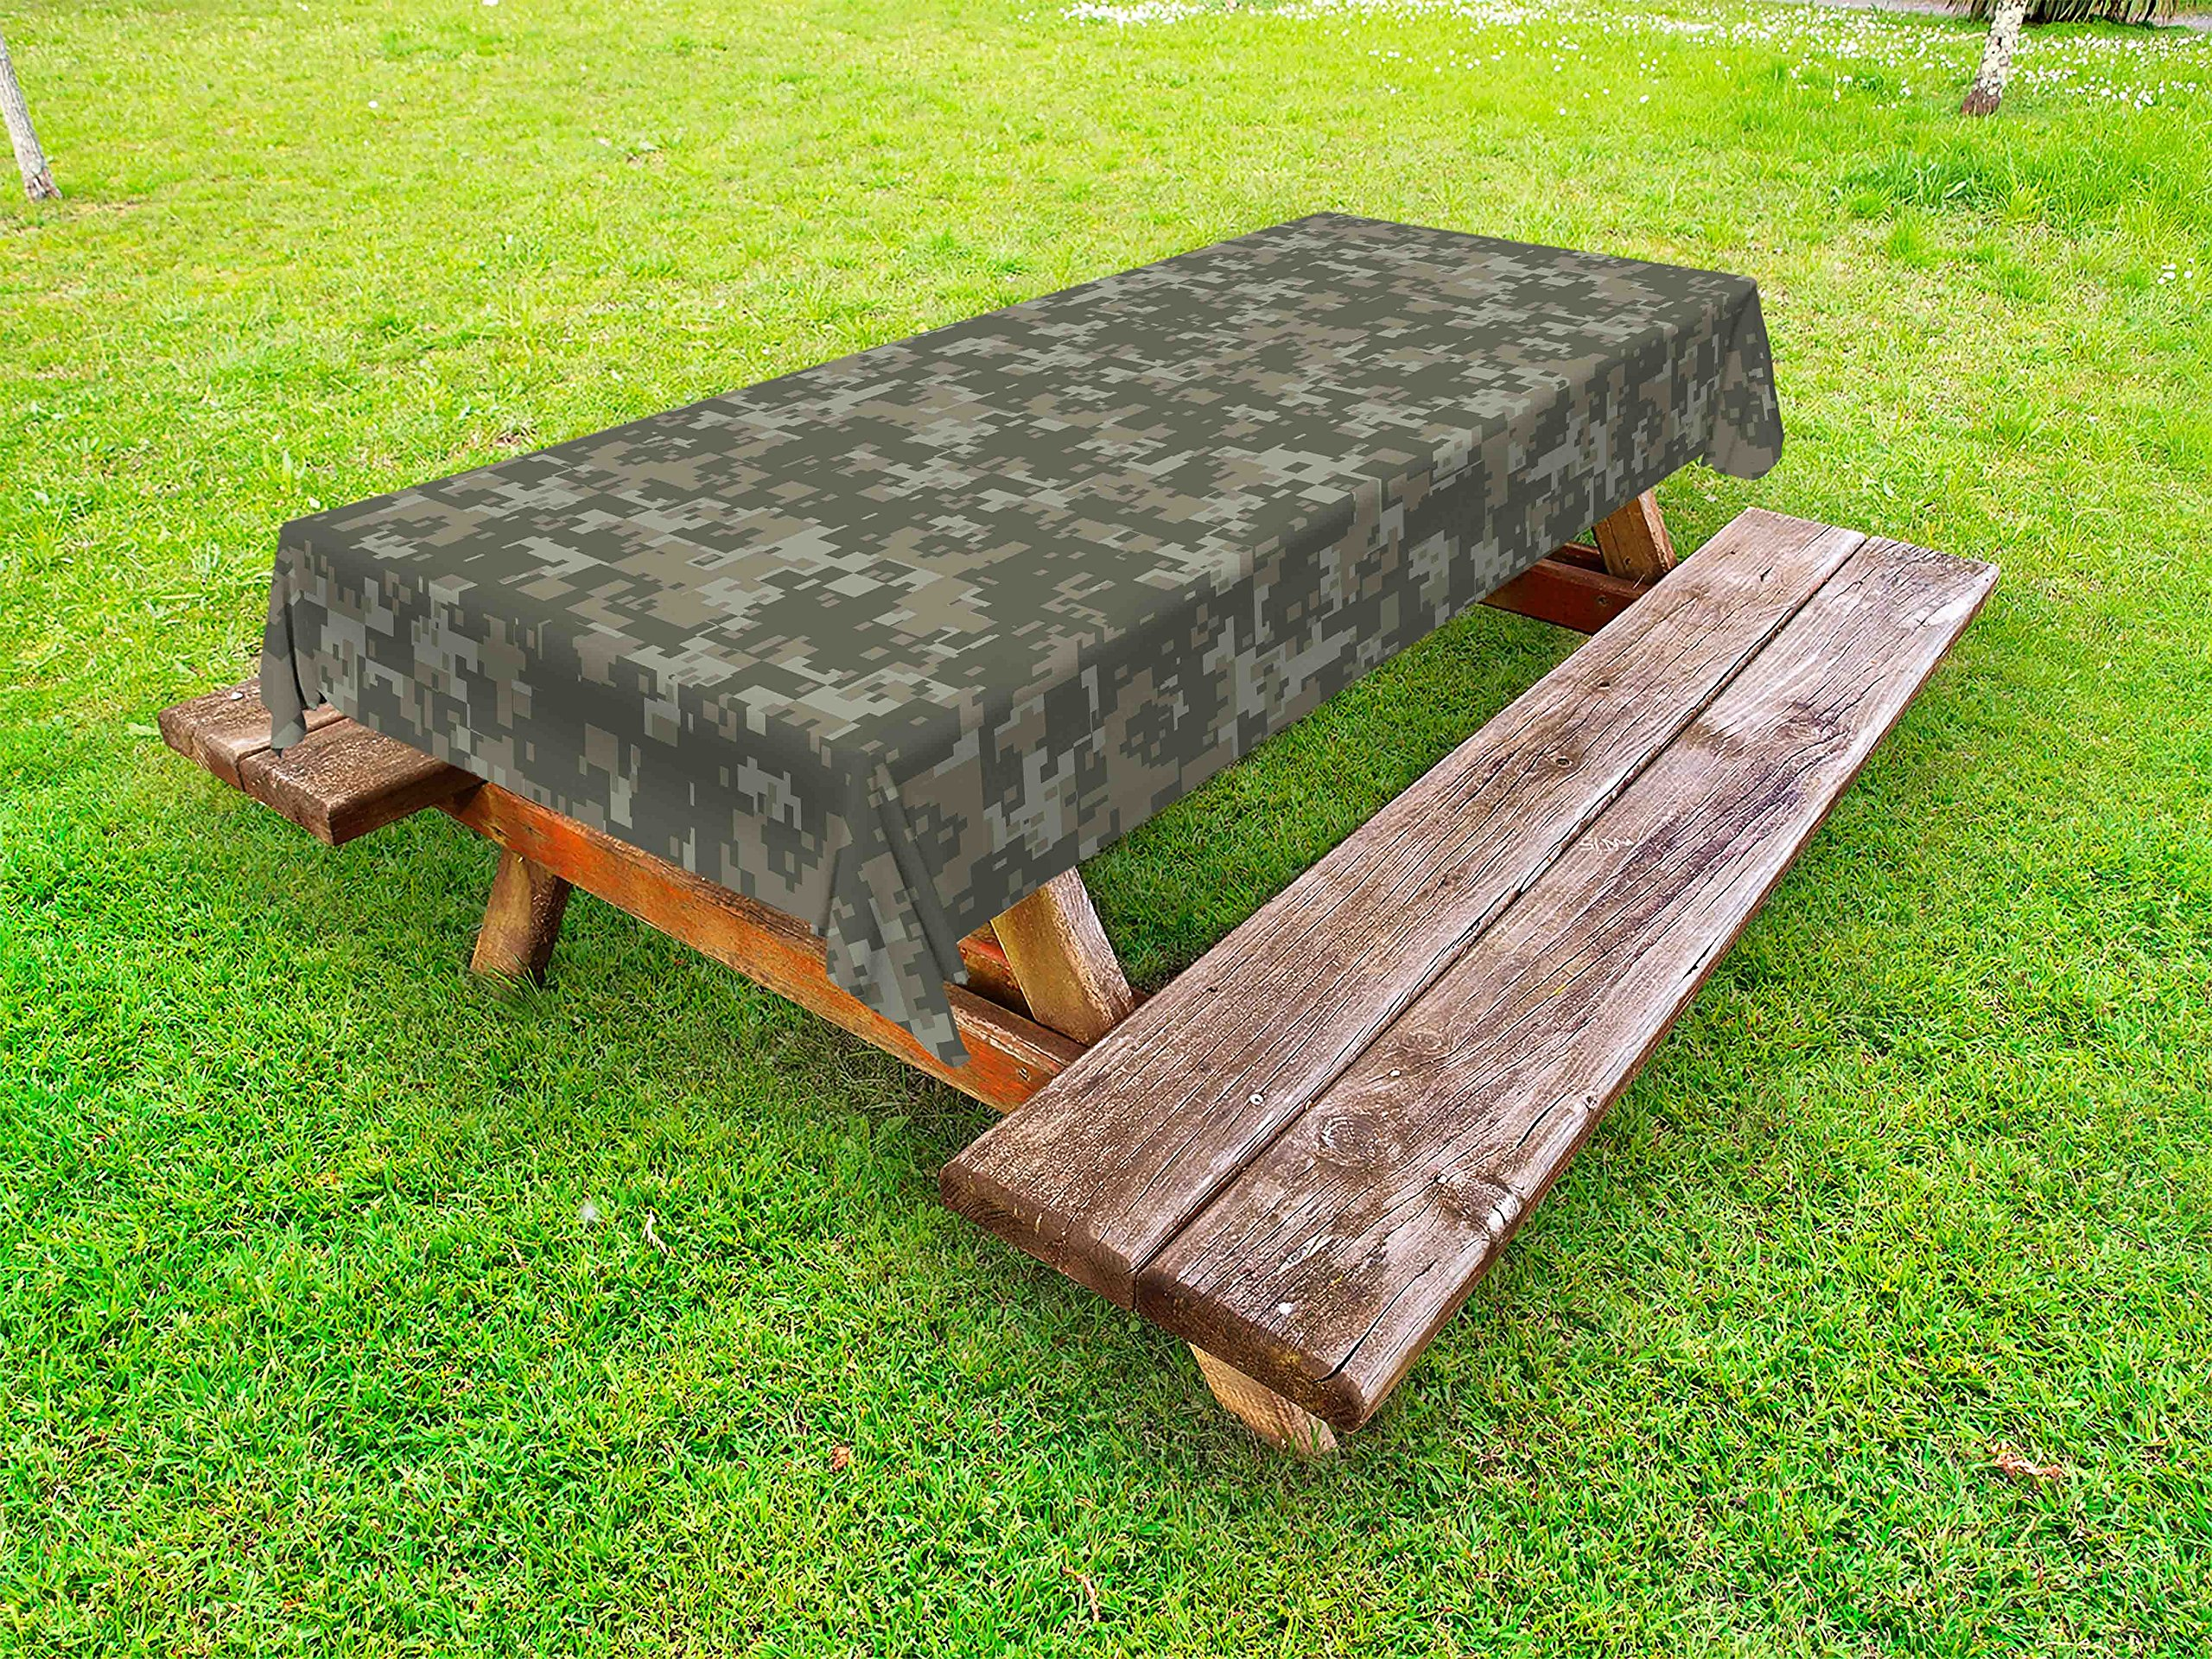 Ambesonne Camouflage Outdoor Tablecloth, Monochrome Attire Pattern Concealing Hiding in The Woods Themed Print, Decorative Washable Picnic Table Cloth, 58 X 104 inches, Army Green Sage Green